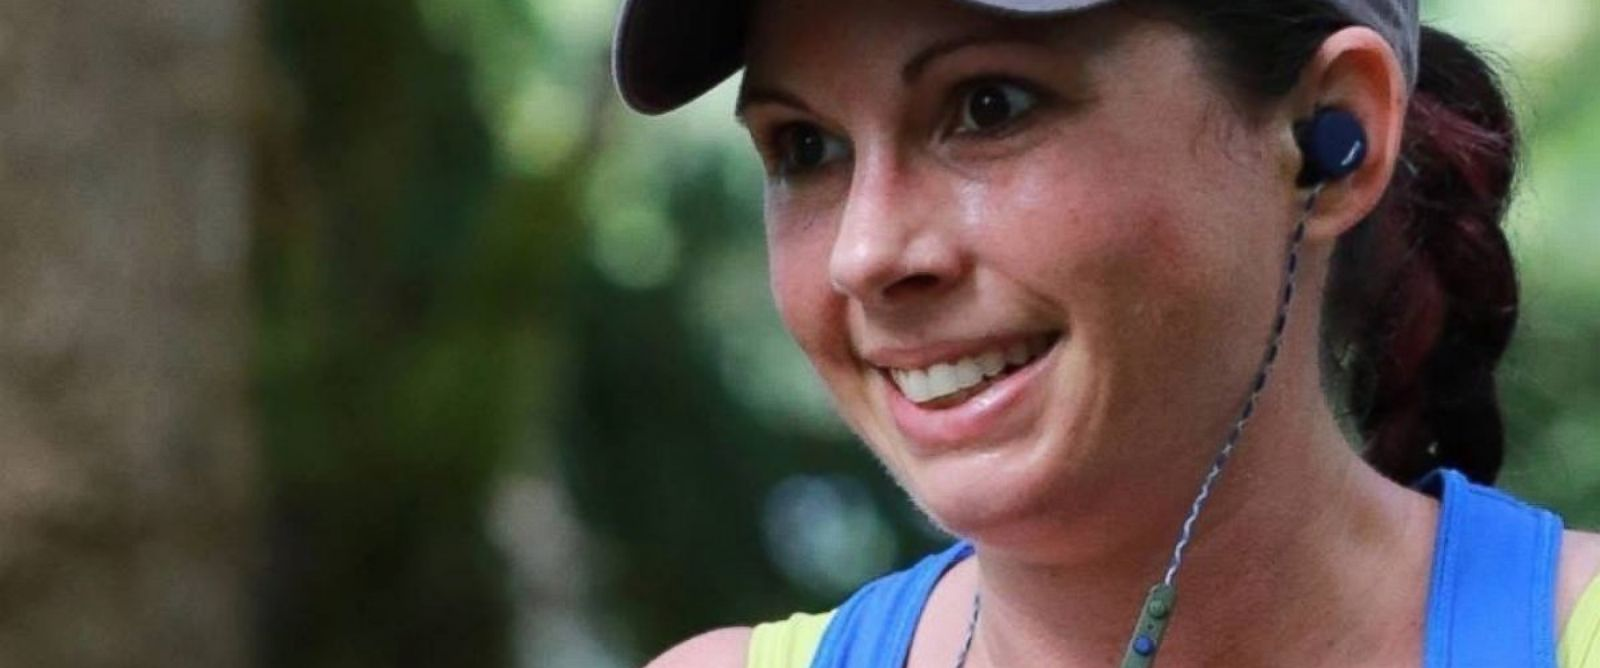 PHOTO: Kelly Herron, 36, survived a brutal assault and fought off her attacker while on a run in Seattle, March 5, 2017.